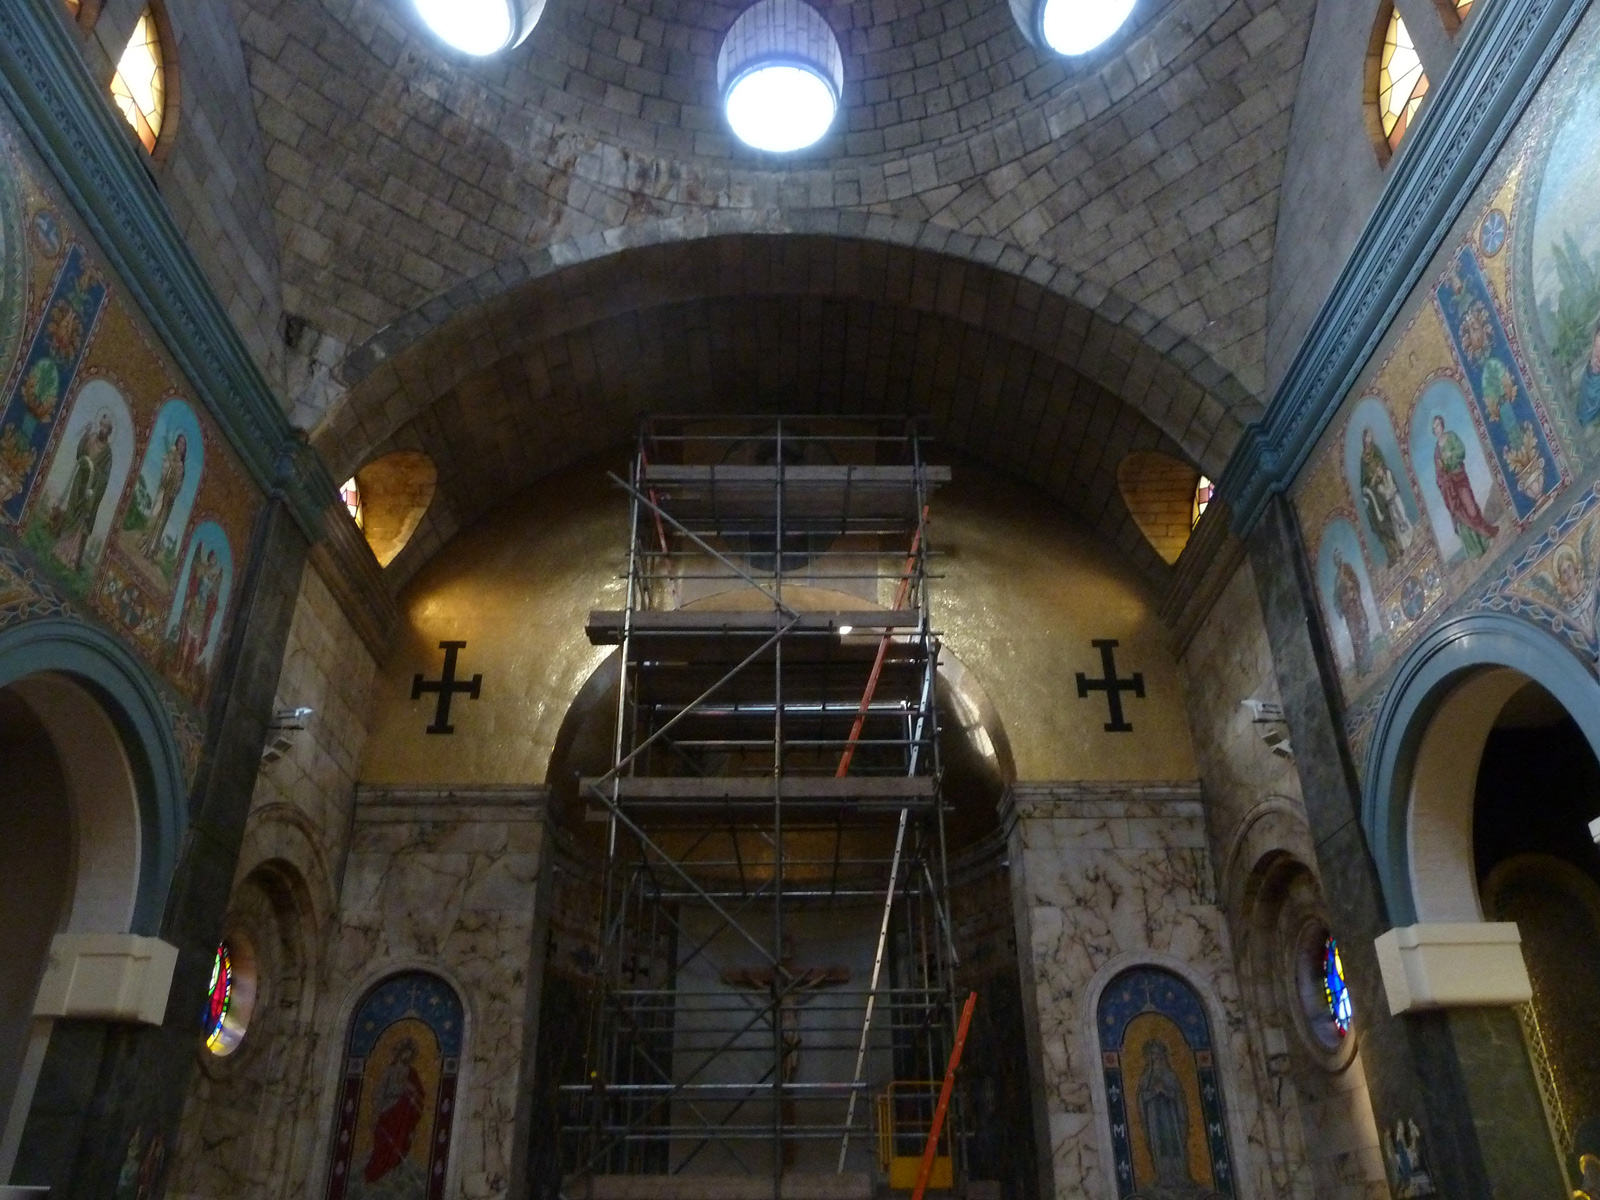 St-Philip-Neri-Church.-Liverpool-Mosaic-removal-for-restoration